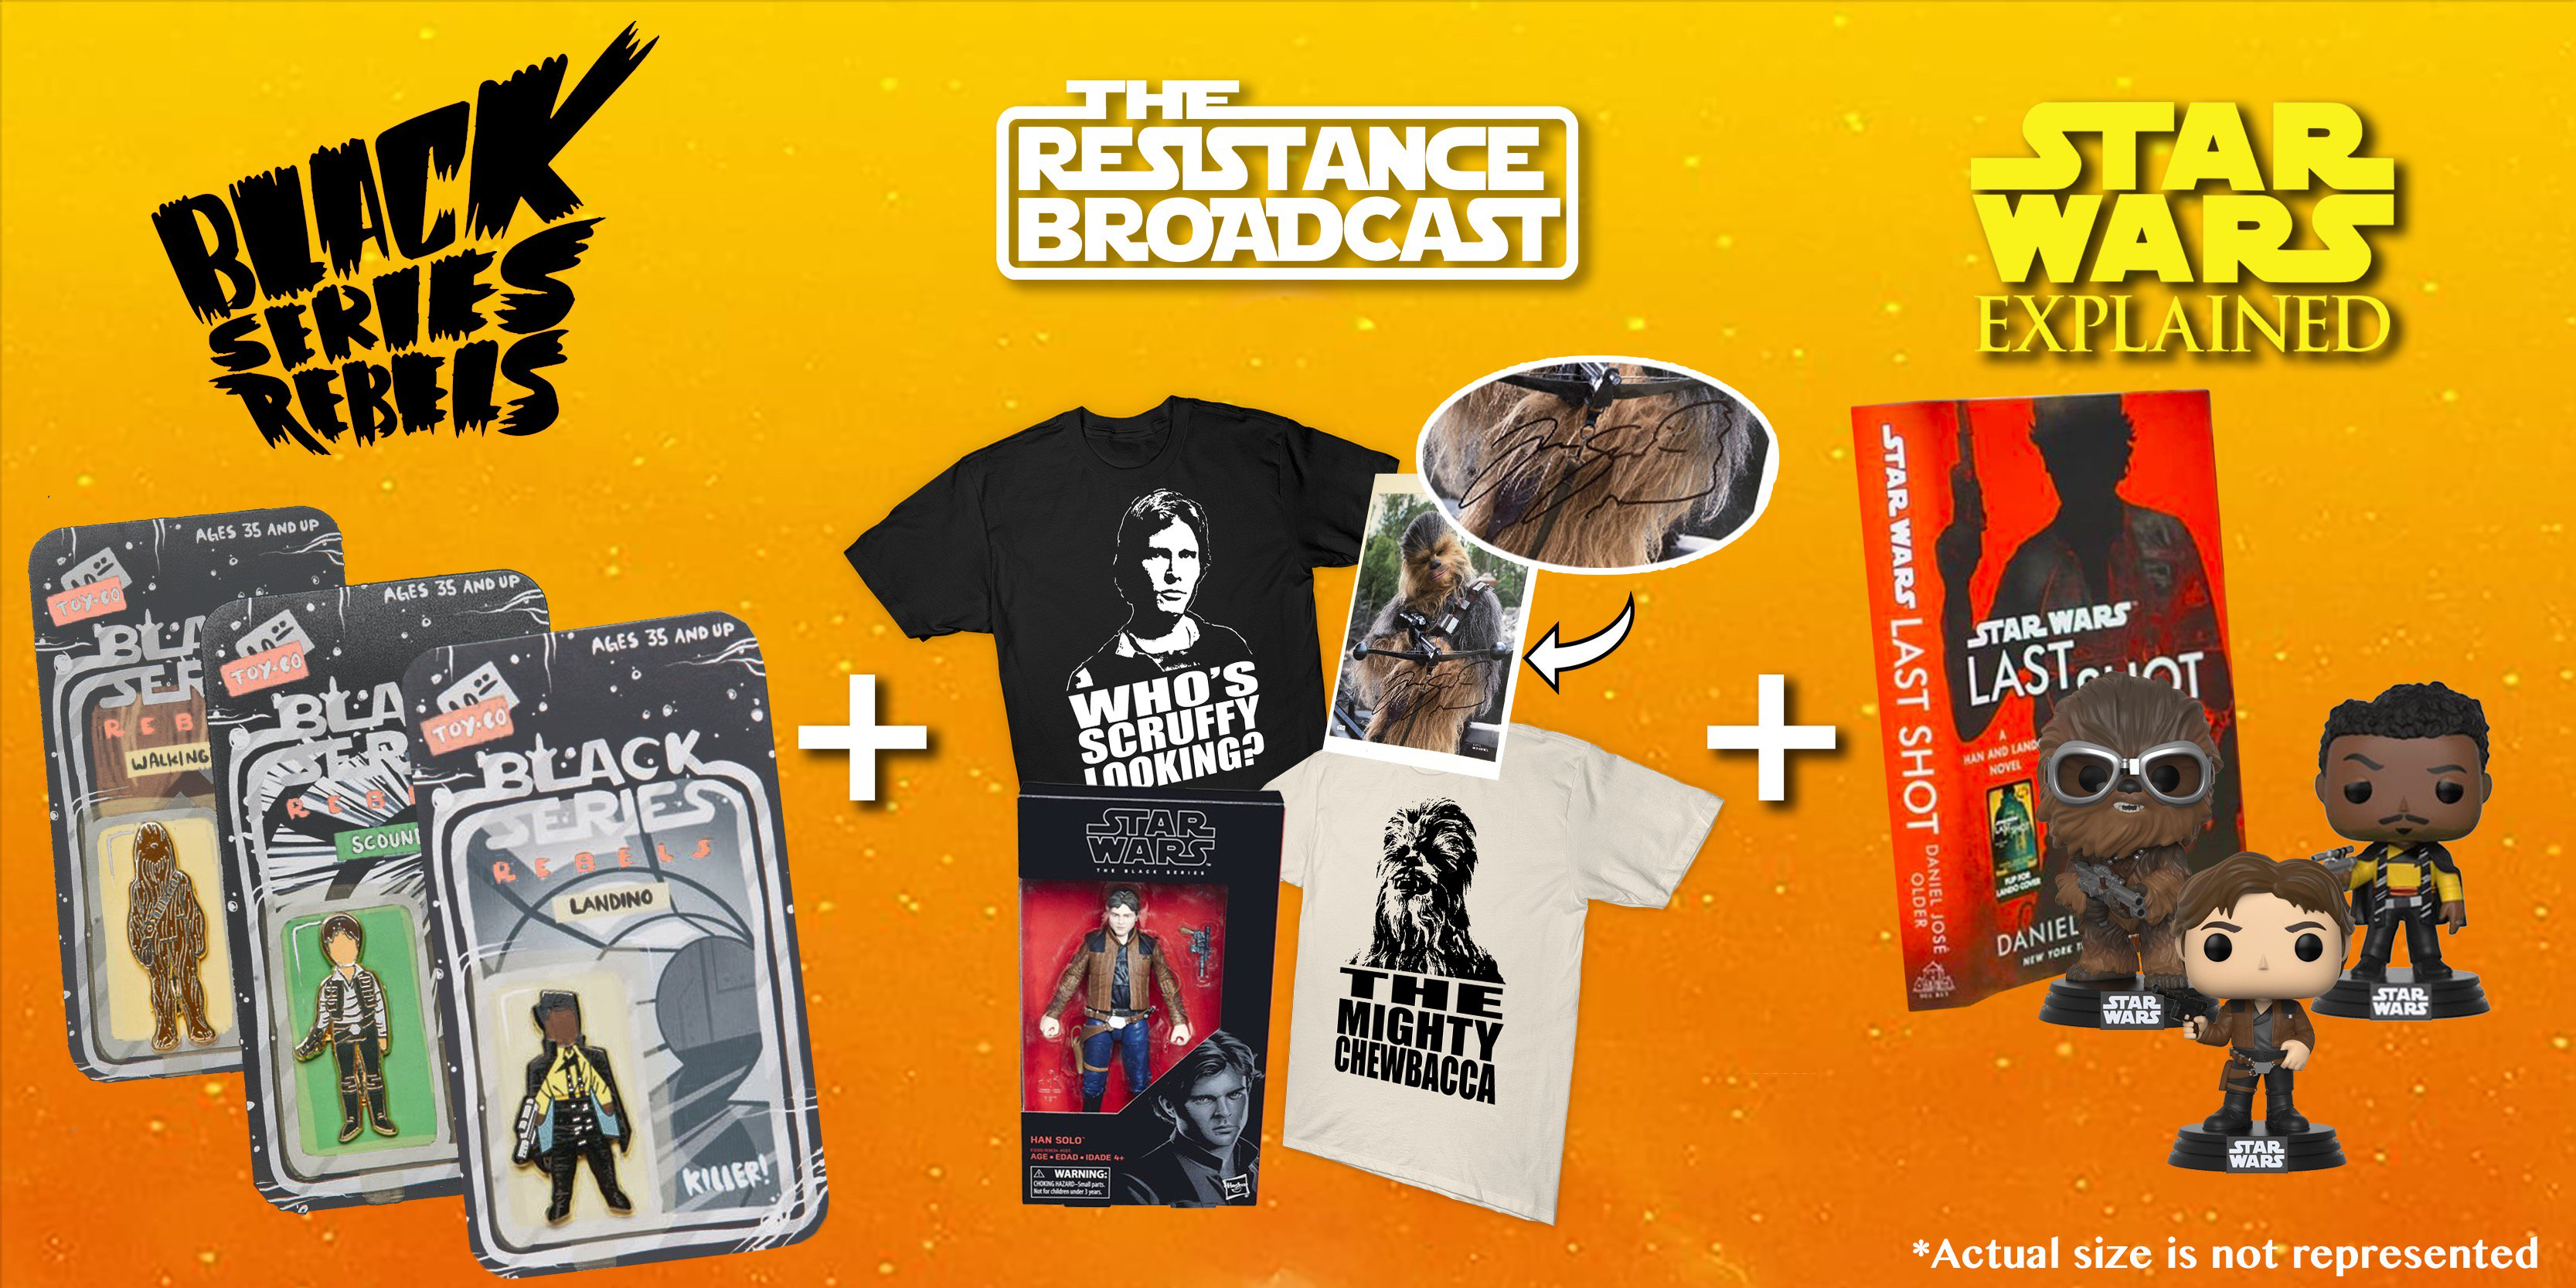 Enter to Win the Solo Challenge Prize Package Presented by The Resistance  Broadcast, Star Wars Explained, and Black Series Rebels!